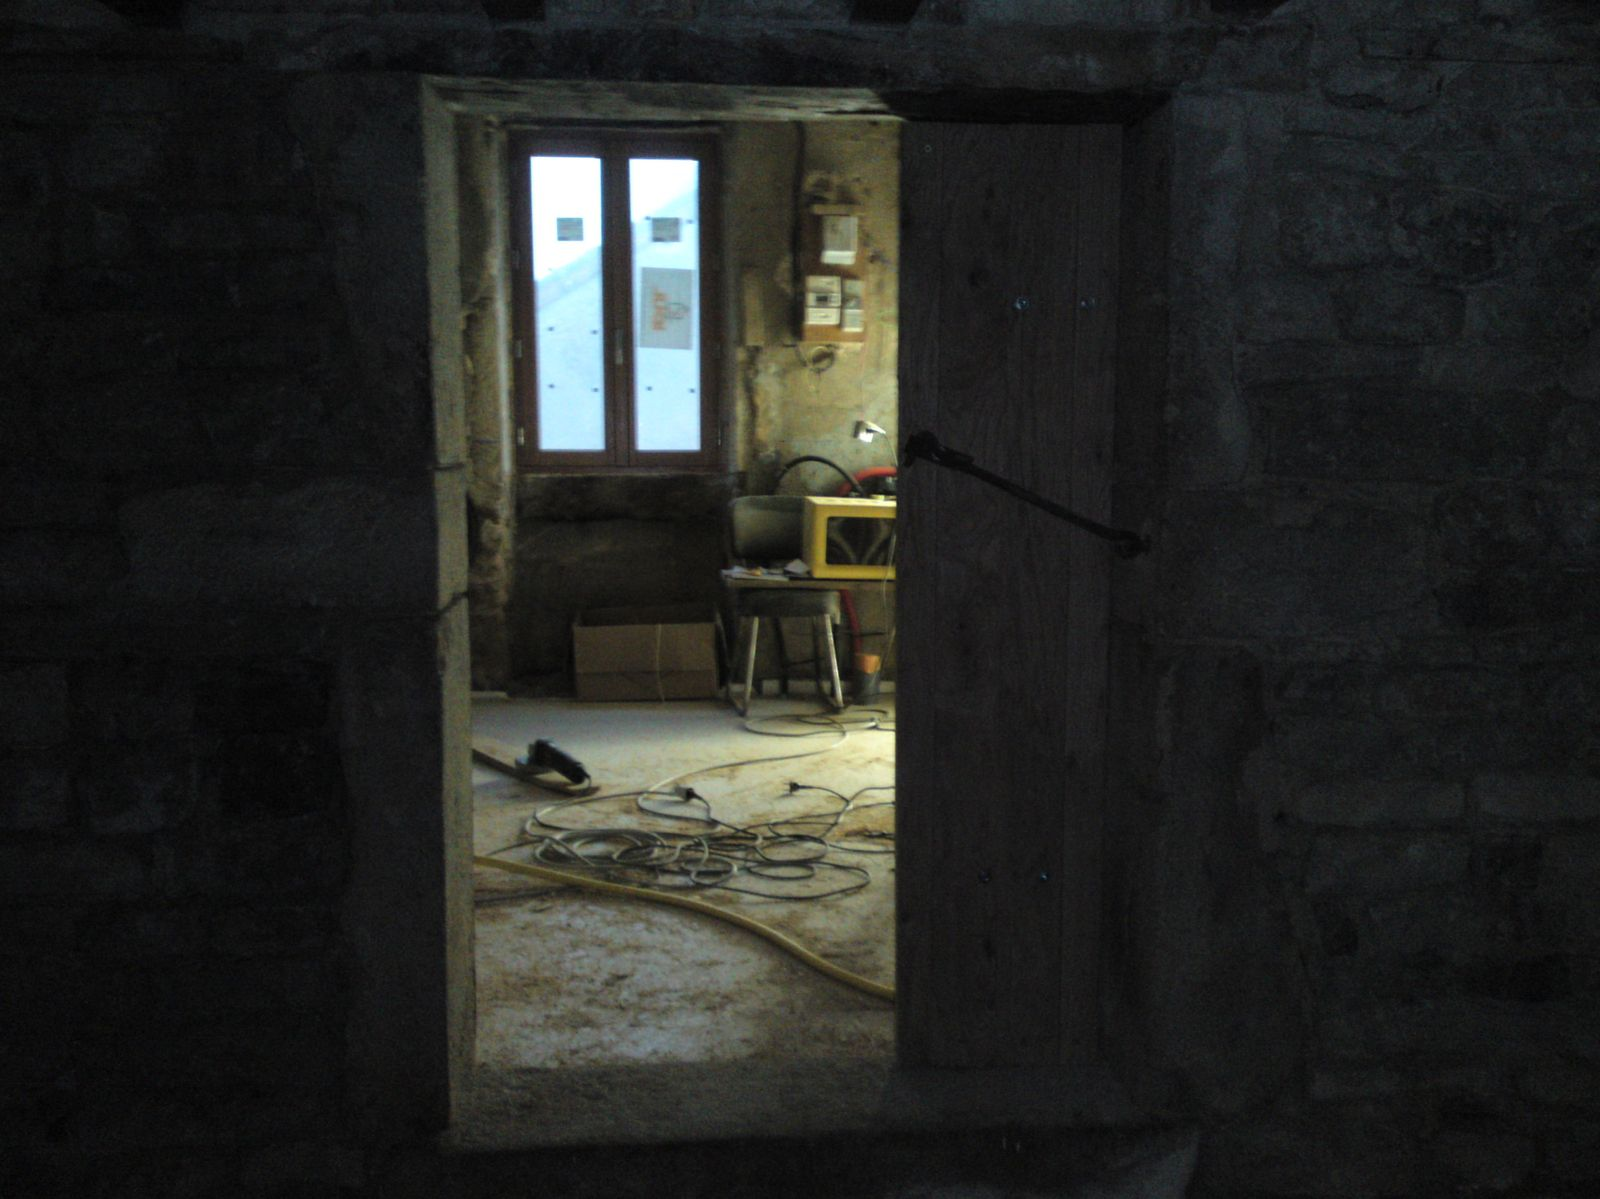 Porte cave renovation d 39 une fermette en bourgogne for Lasurer une porte